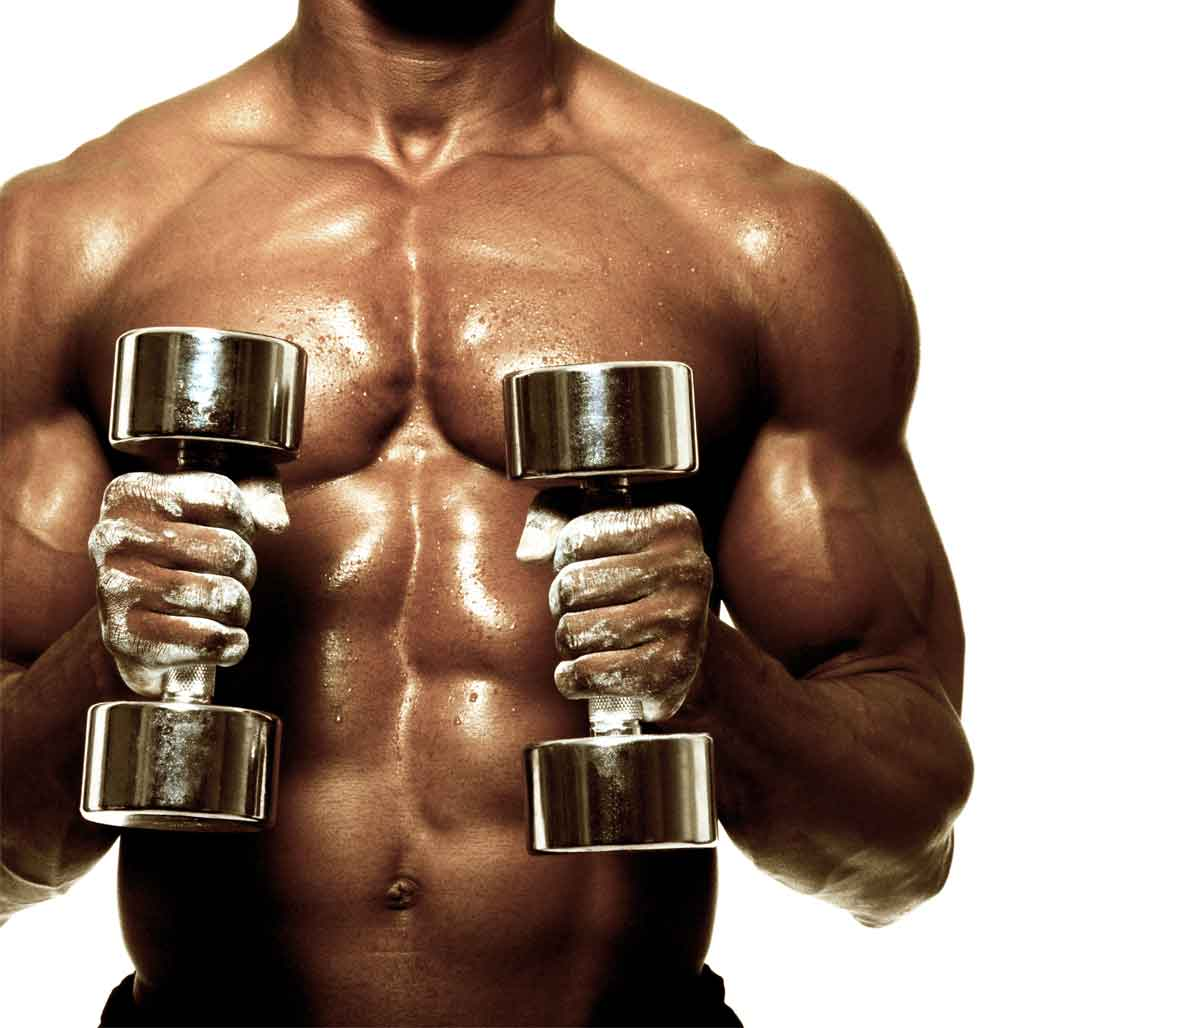 ripped-abs-free-weights-main